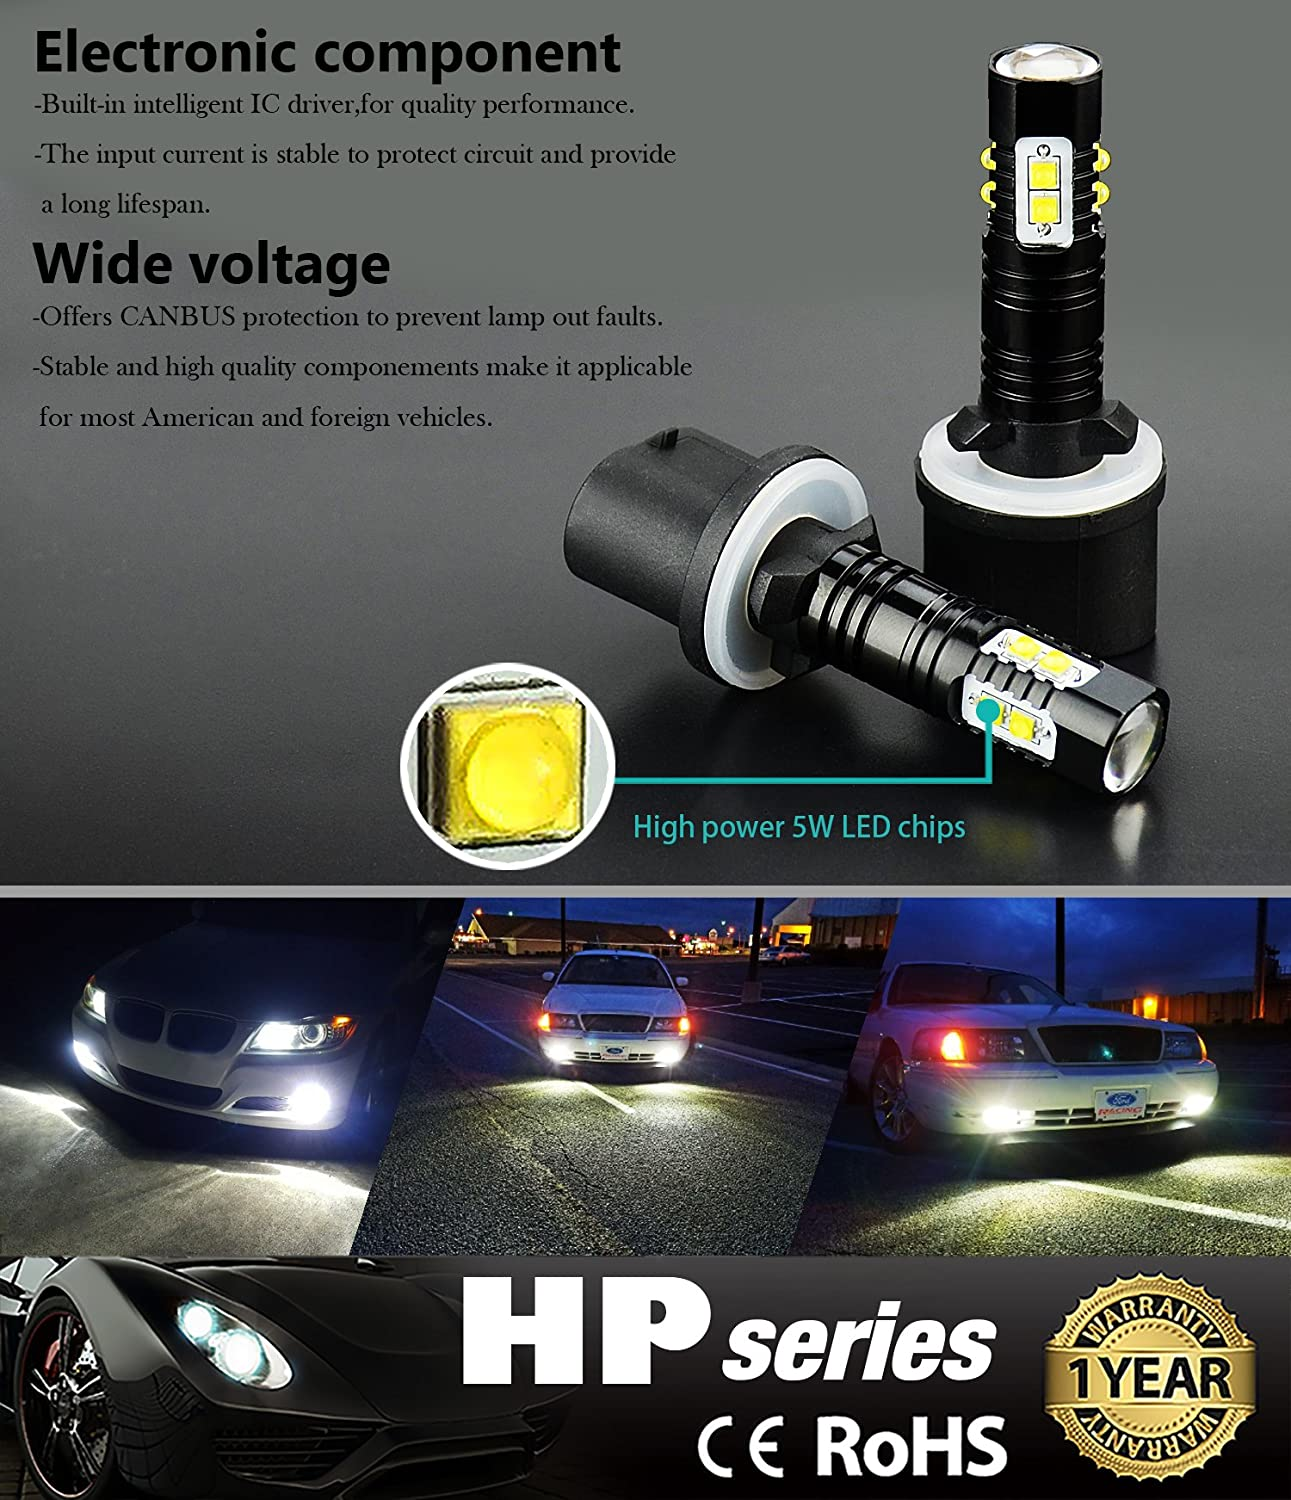 Jdm Astar Extremely Bright Max 50w High Power 880 Led White Flood Lamp Circuit B2b Electronic Components Fog Light Bulbs For Drl Or Lights Xenon Automotive